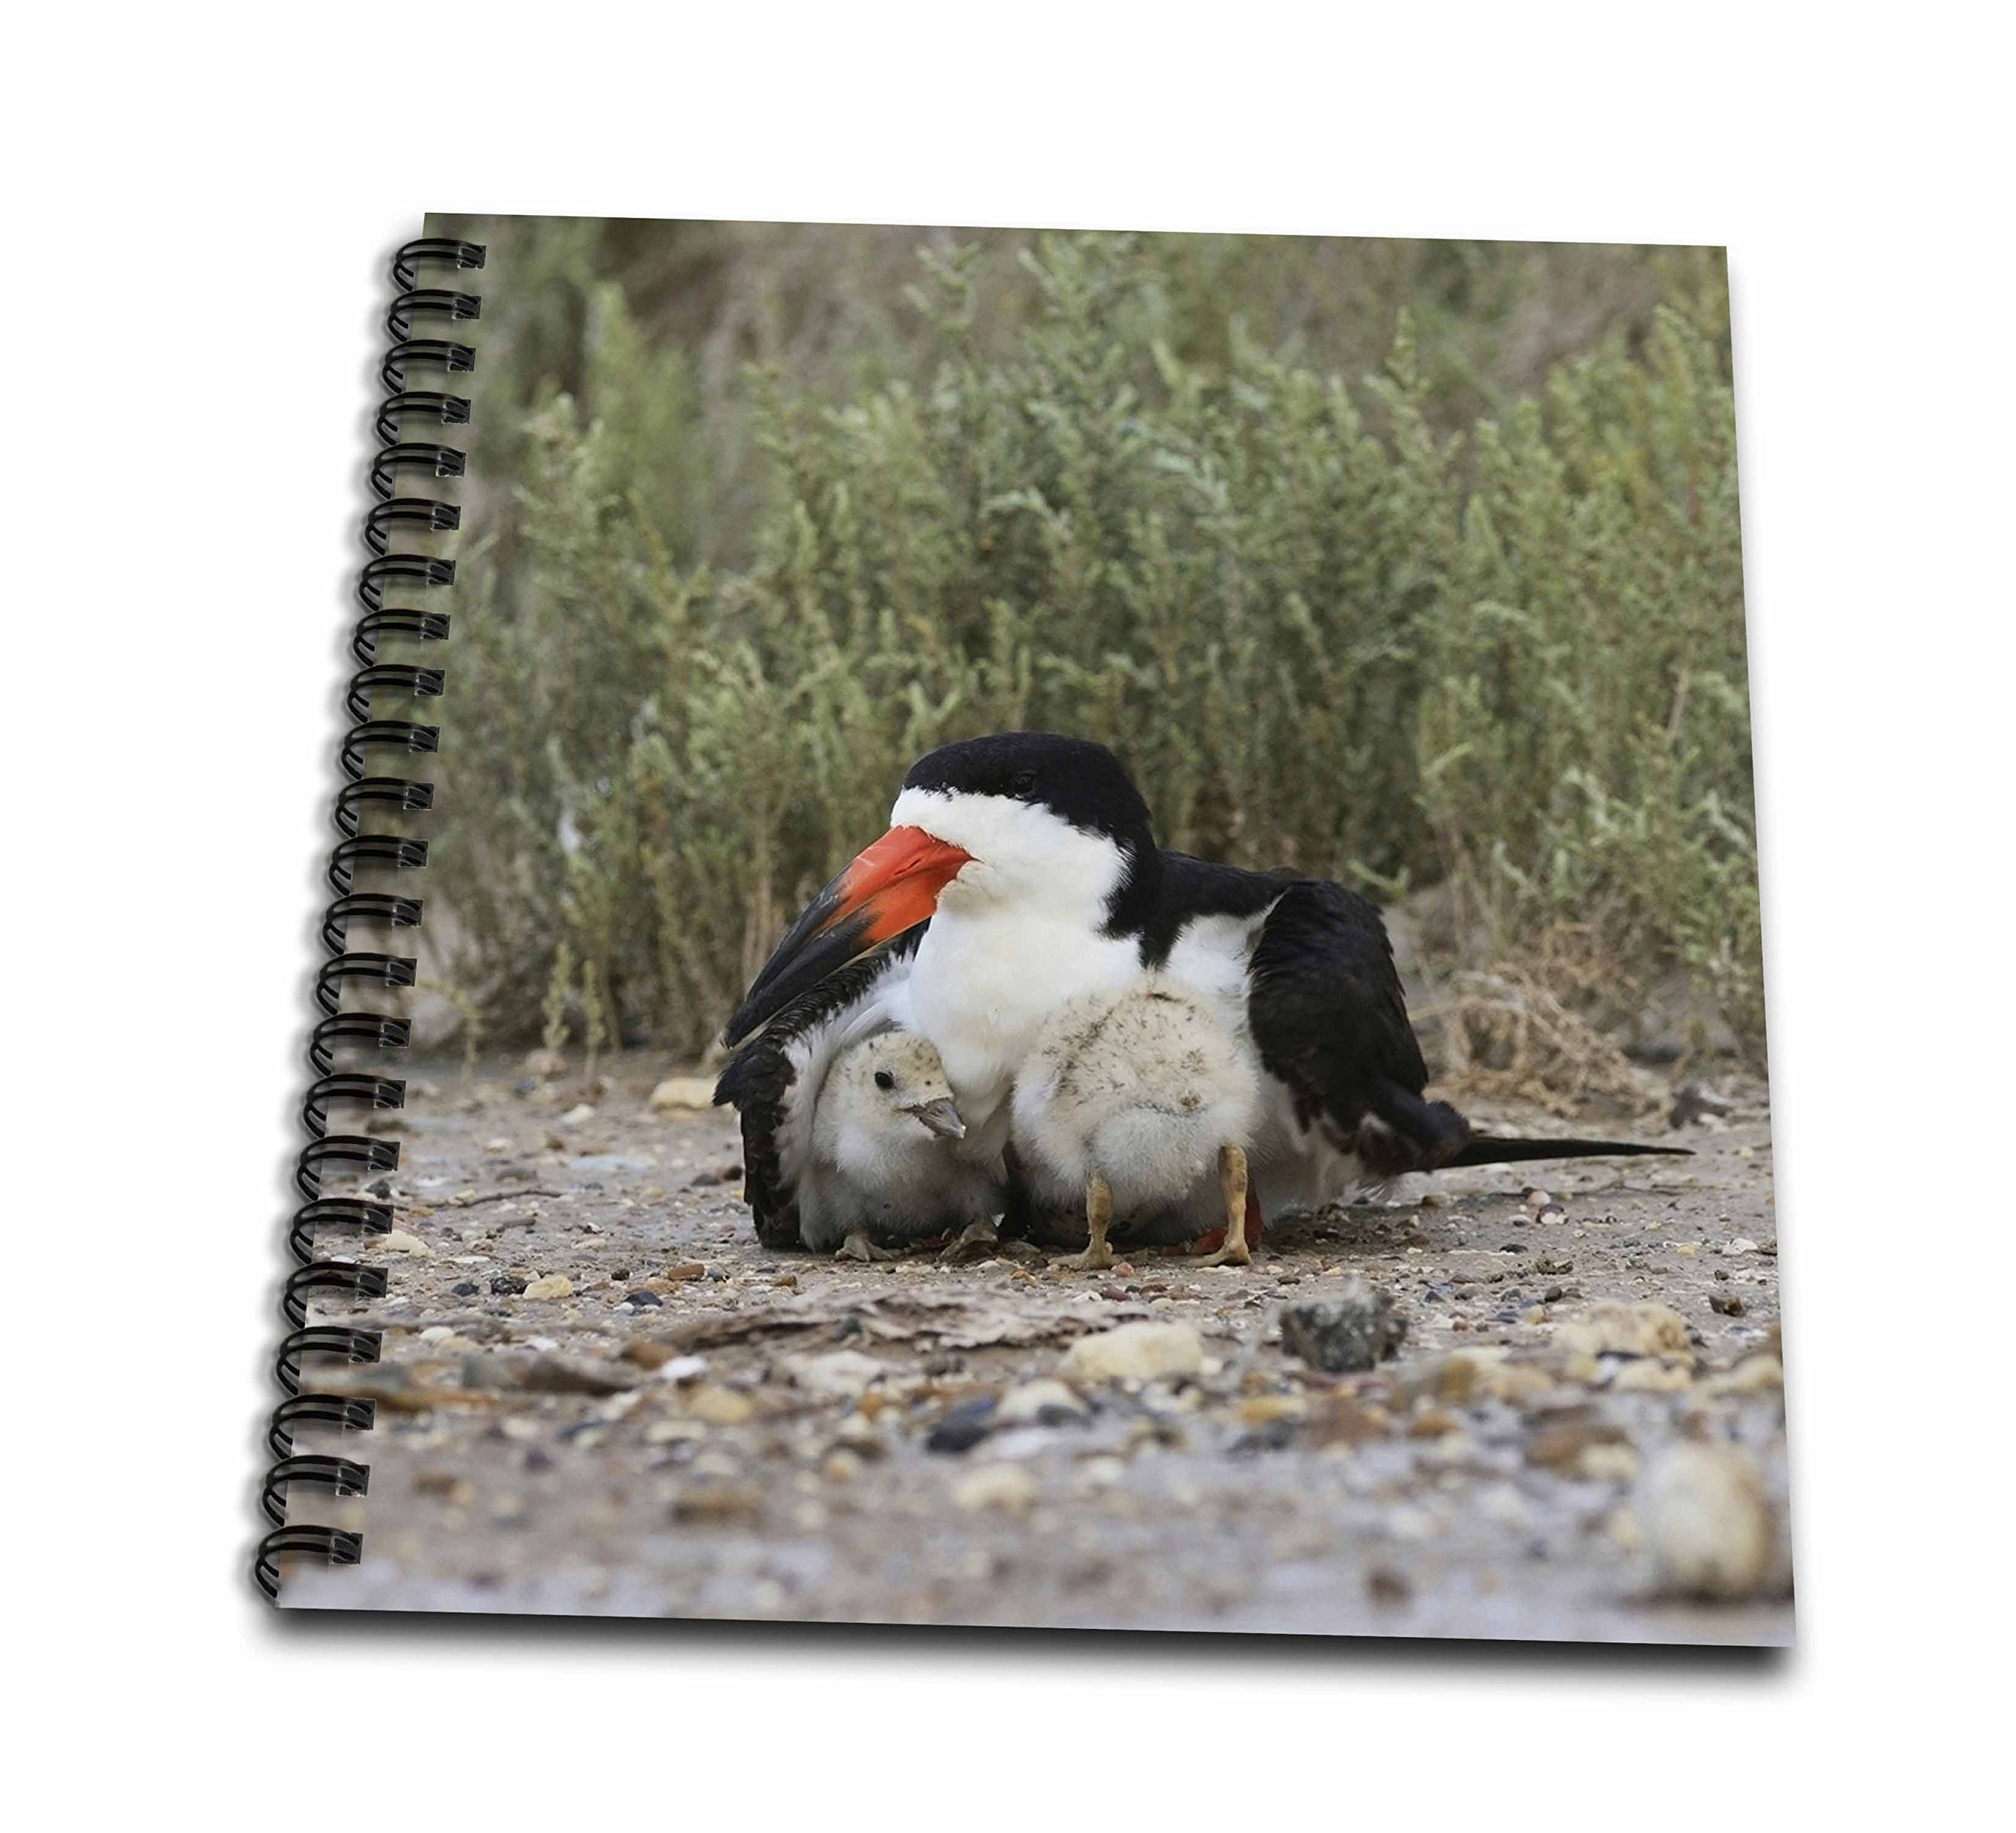 3dRose Danita Delimont - Birds - Black Skimmer keeeping chick warm, South Padre Island, Texas - Drawing Book 8 x 8 inch (db_279518_1) by 3dRose (Image #2)